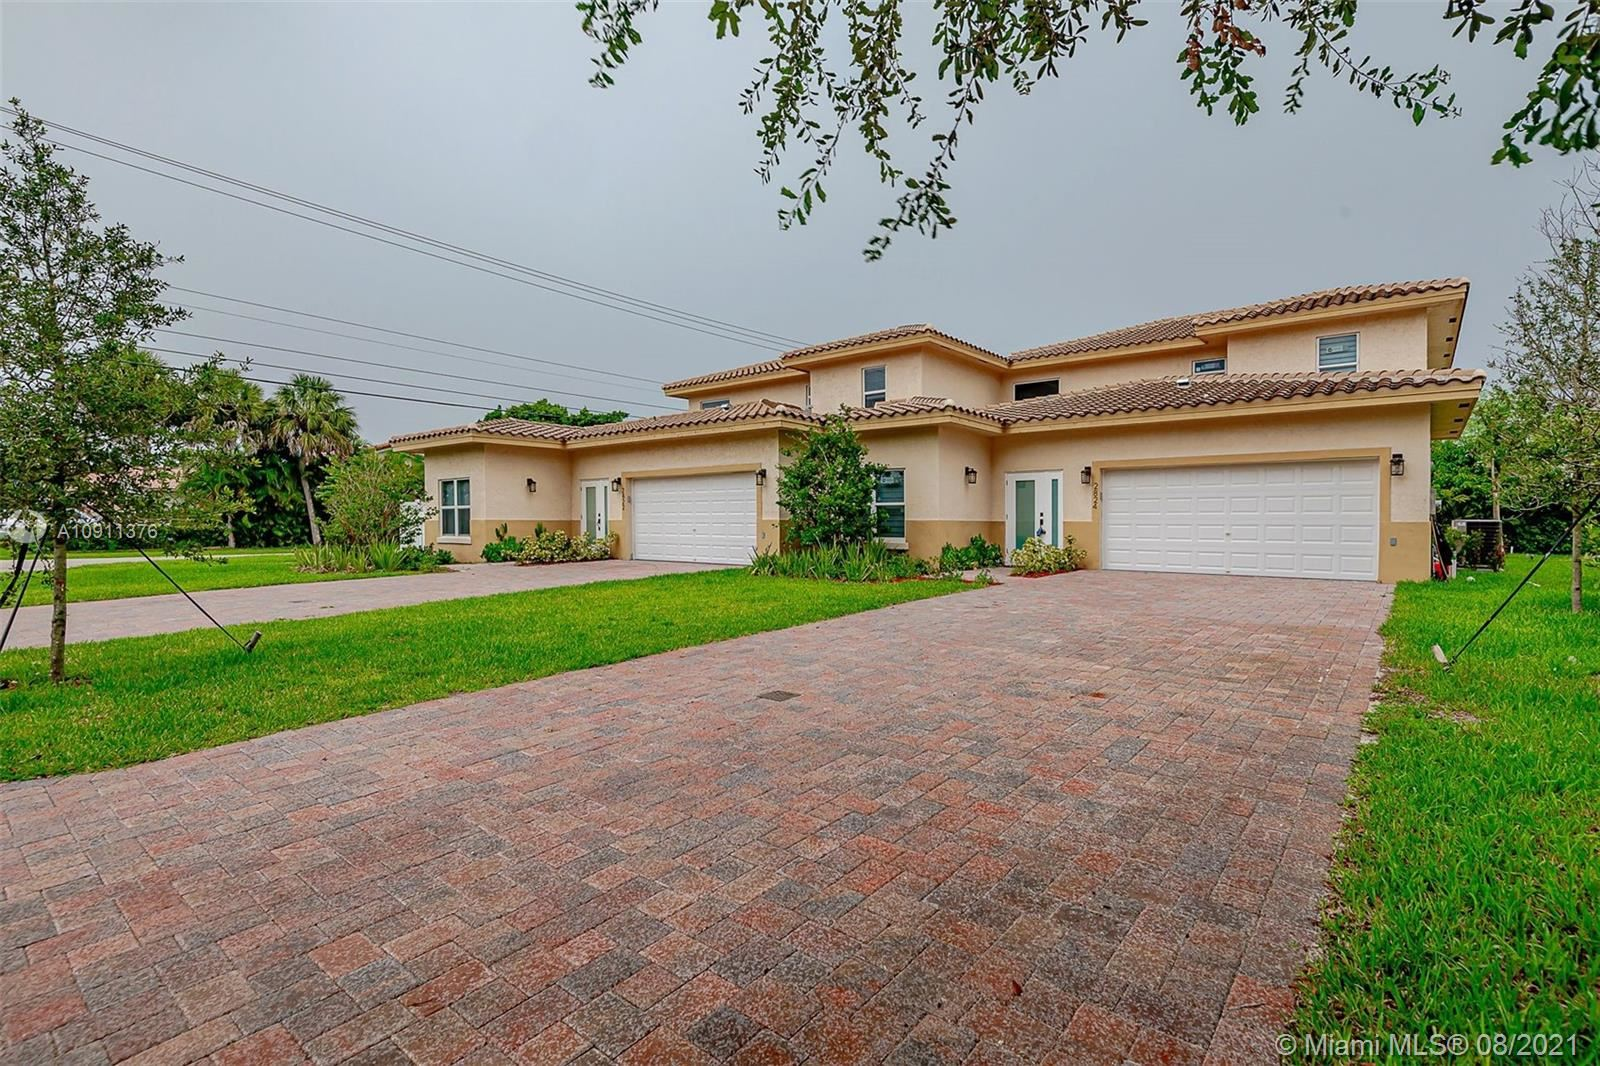 2824 NW 91 ave, Coral Springs, FL 33065 - #: A10911376